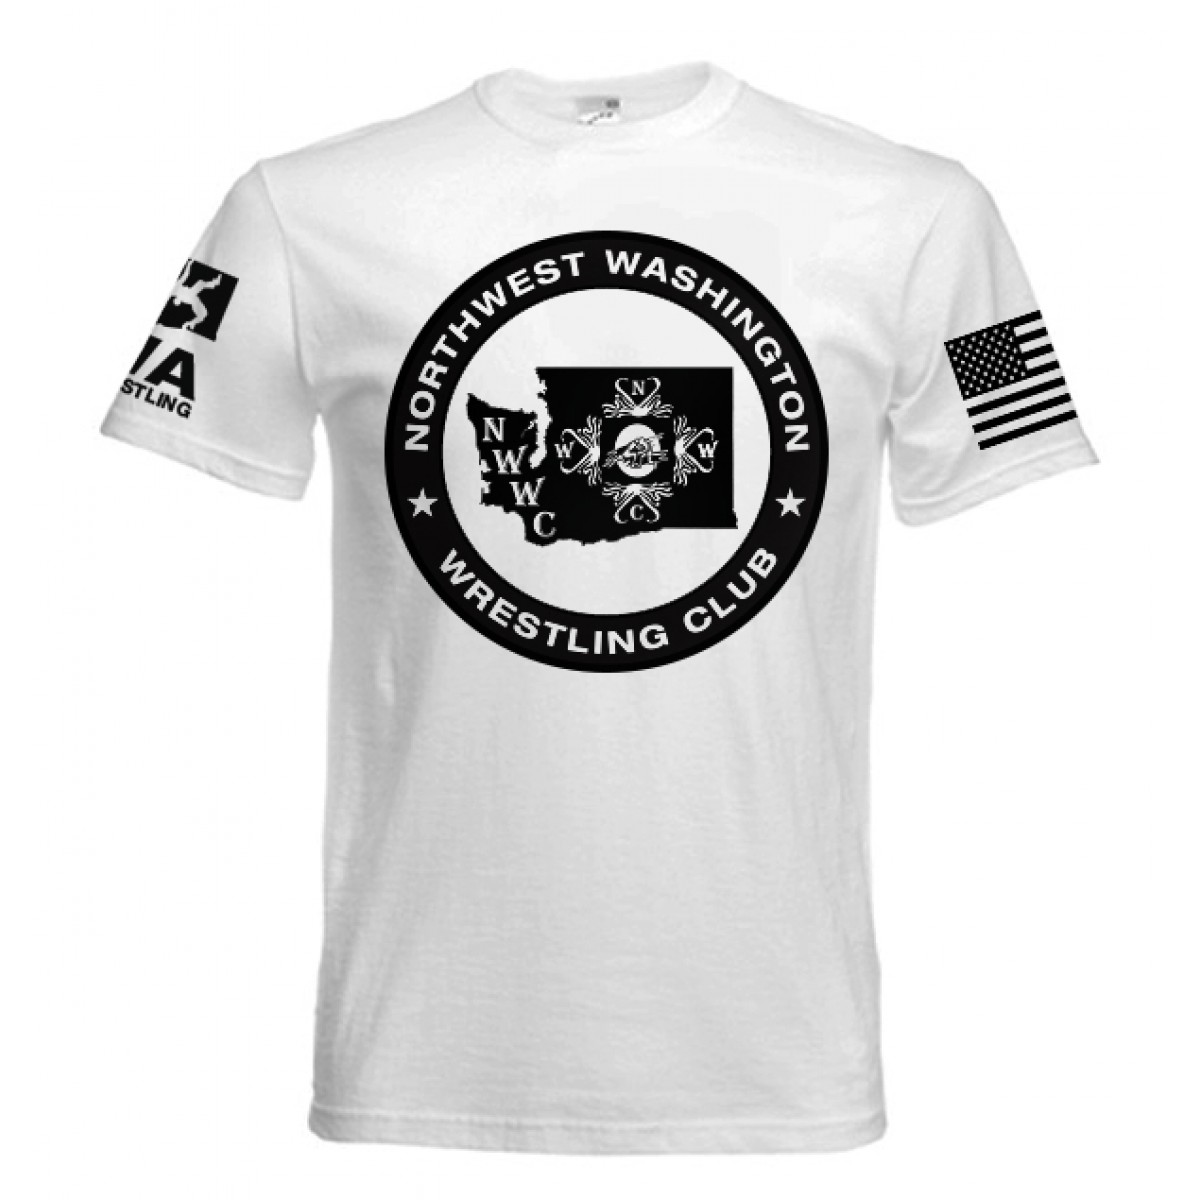 NWWC White T-shirt Black Logo-White-M